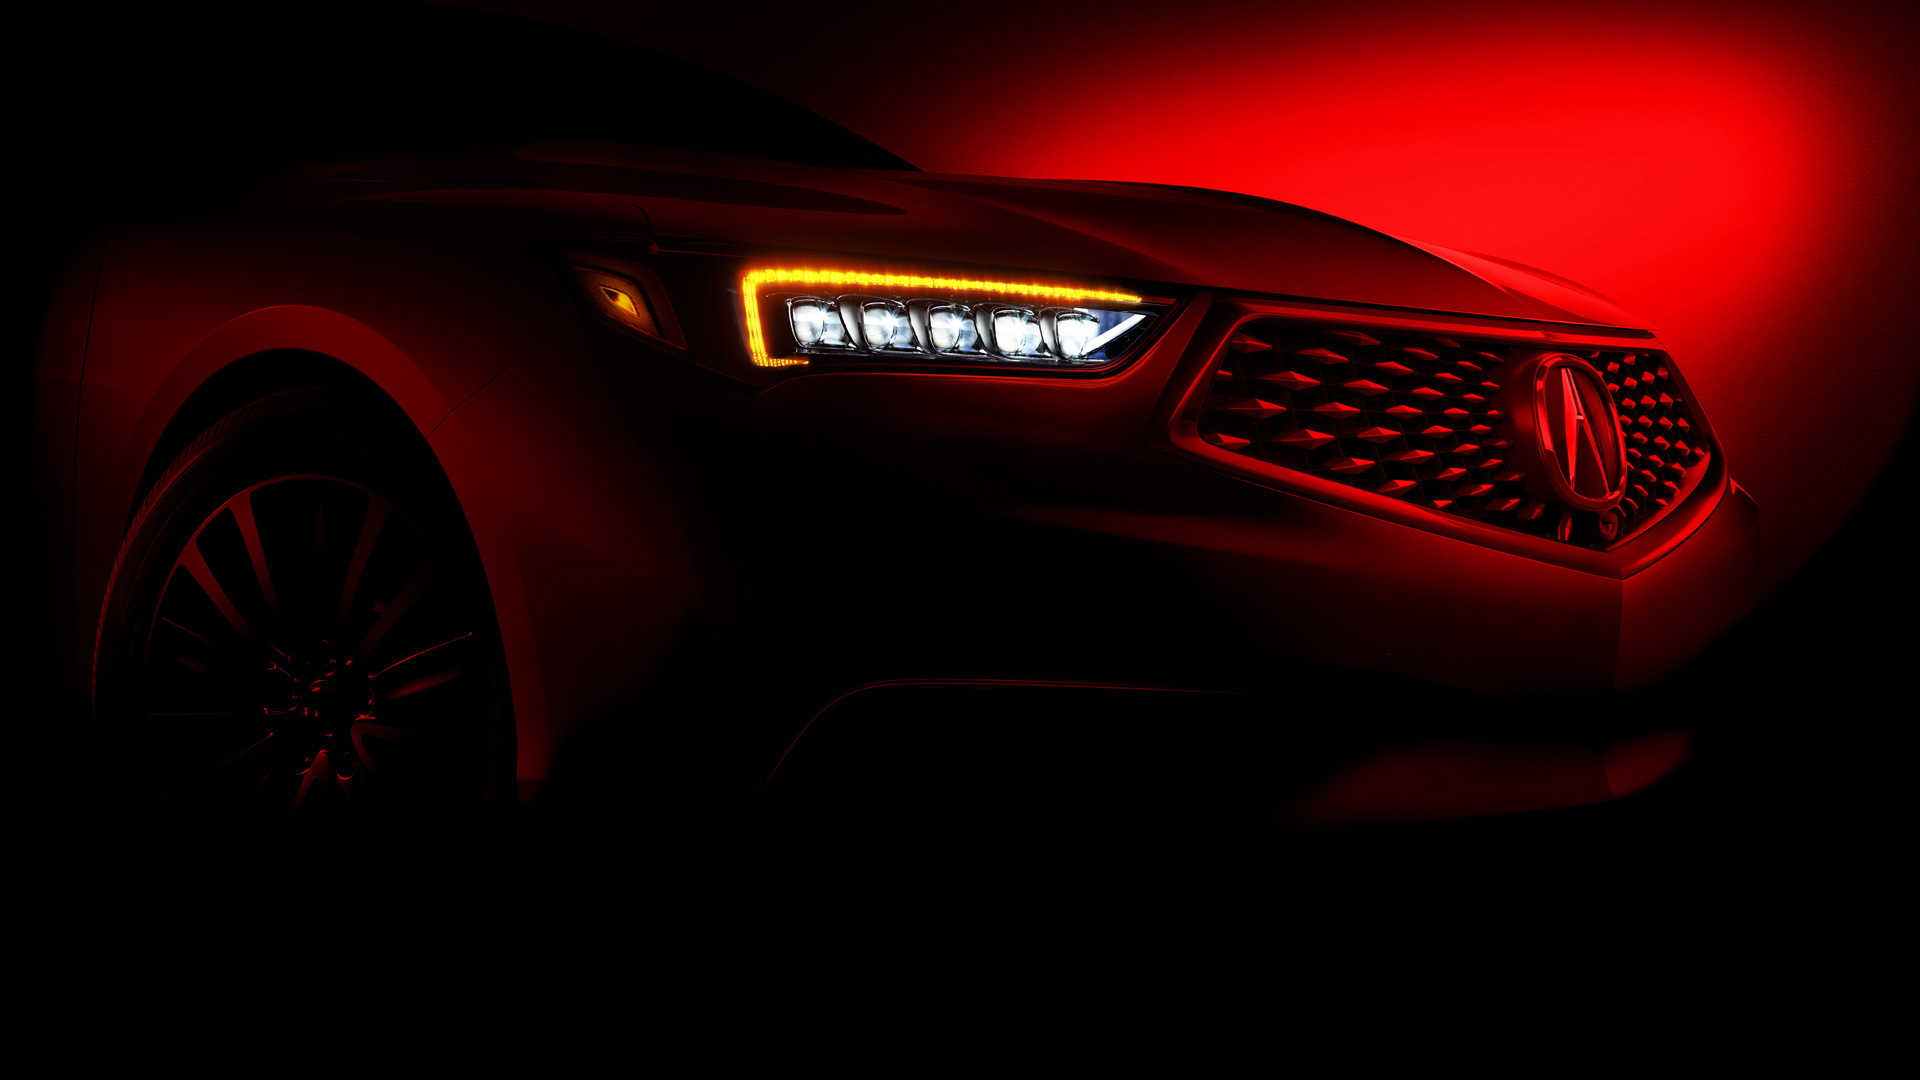 Teaser for 2018 Acura TLX debuting at 2017 New York auto show